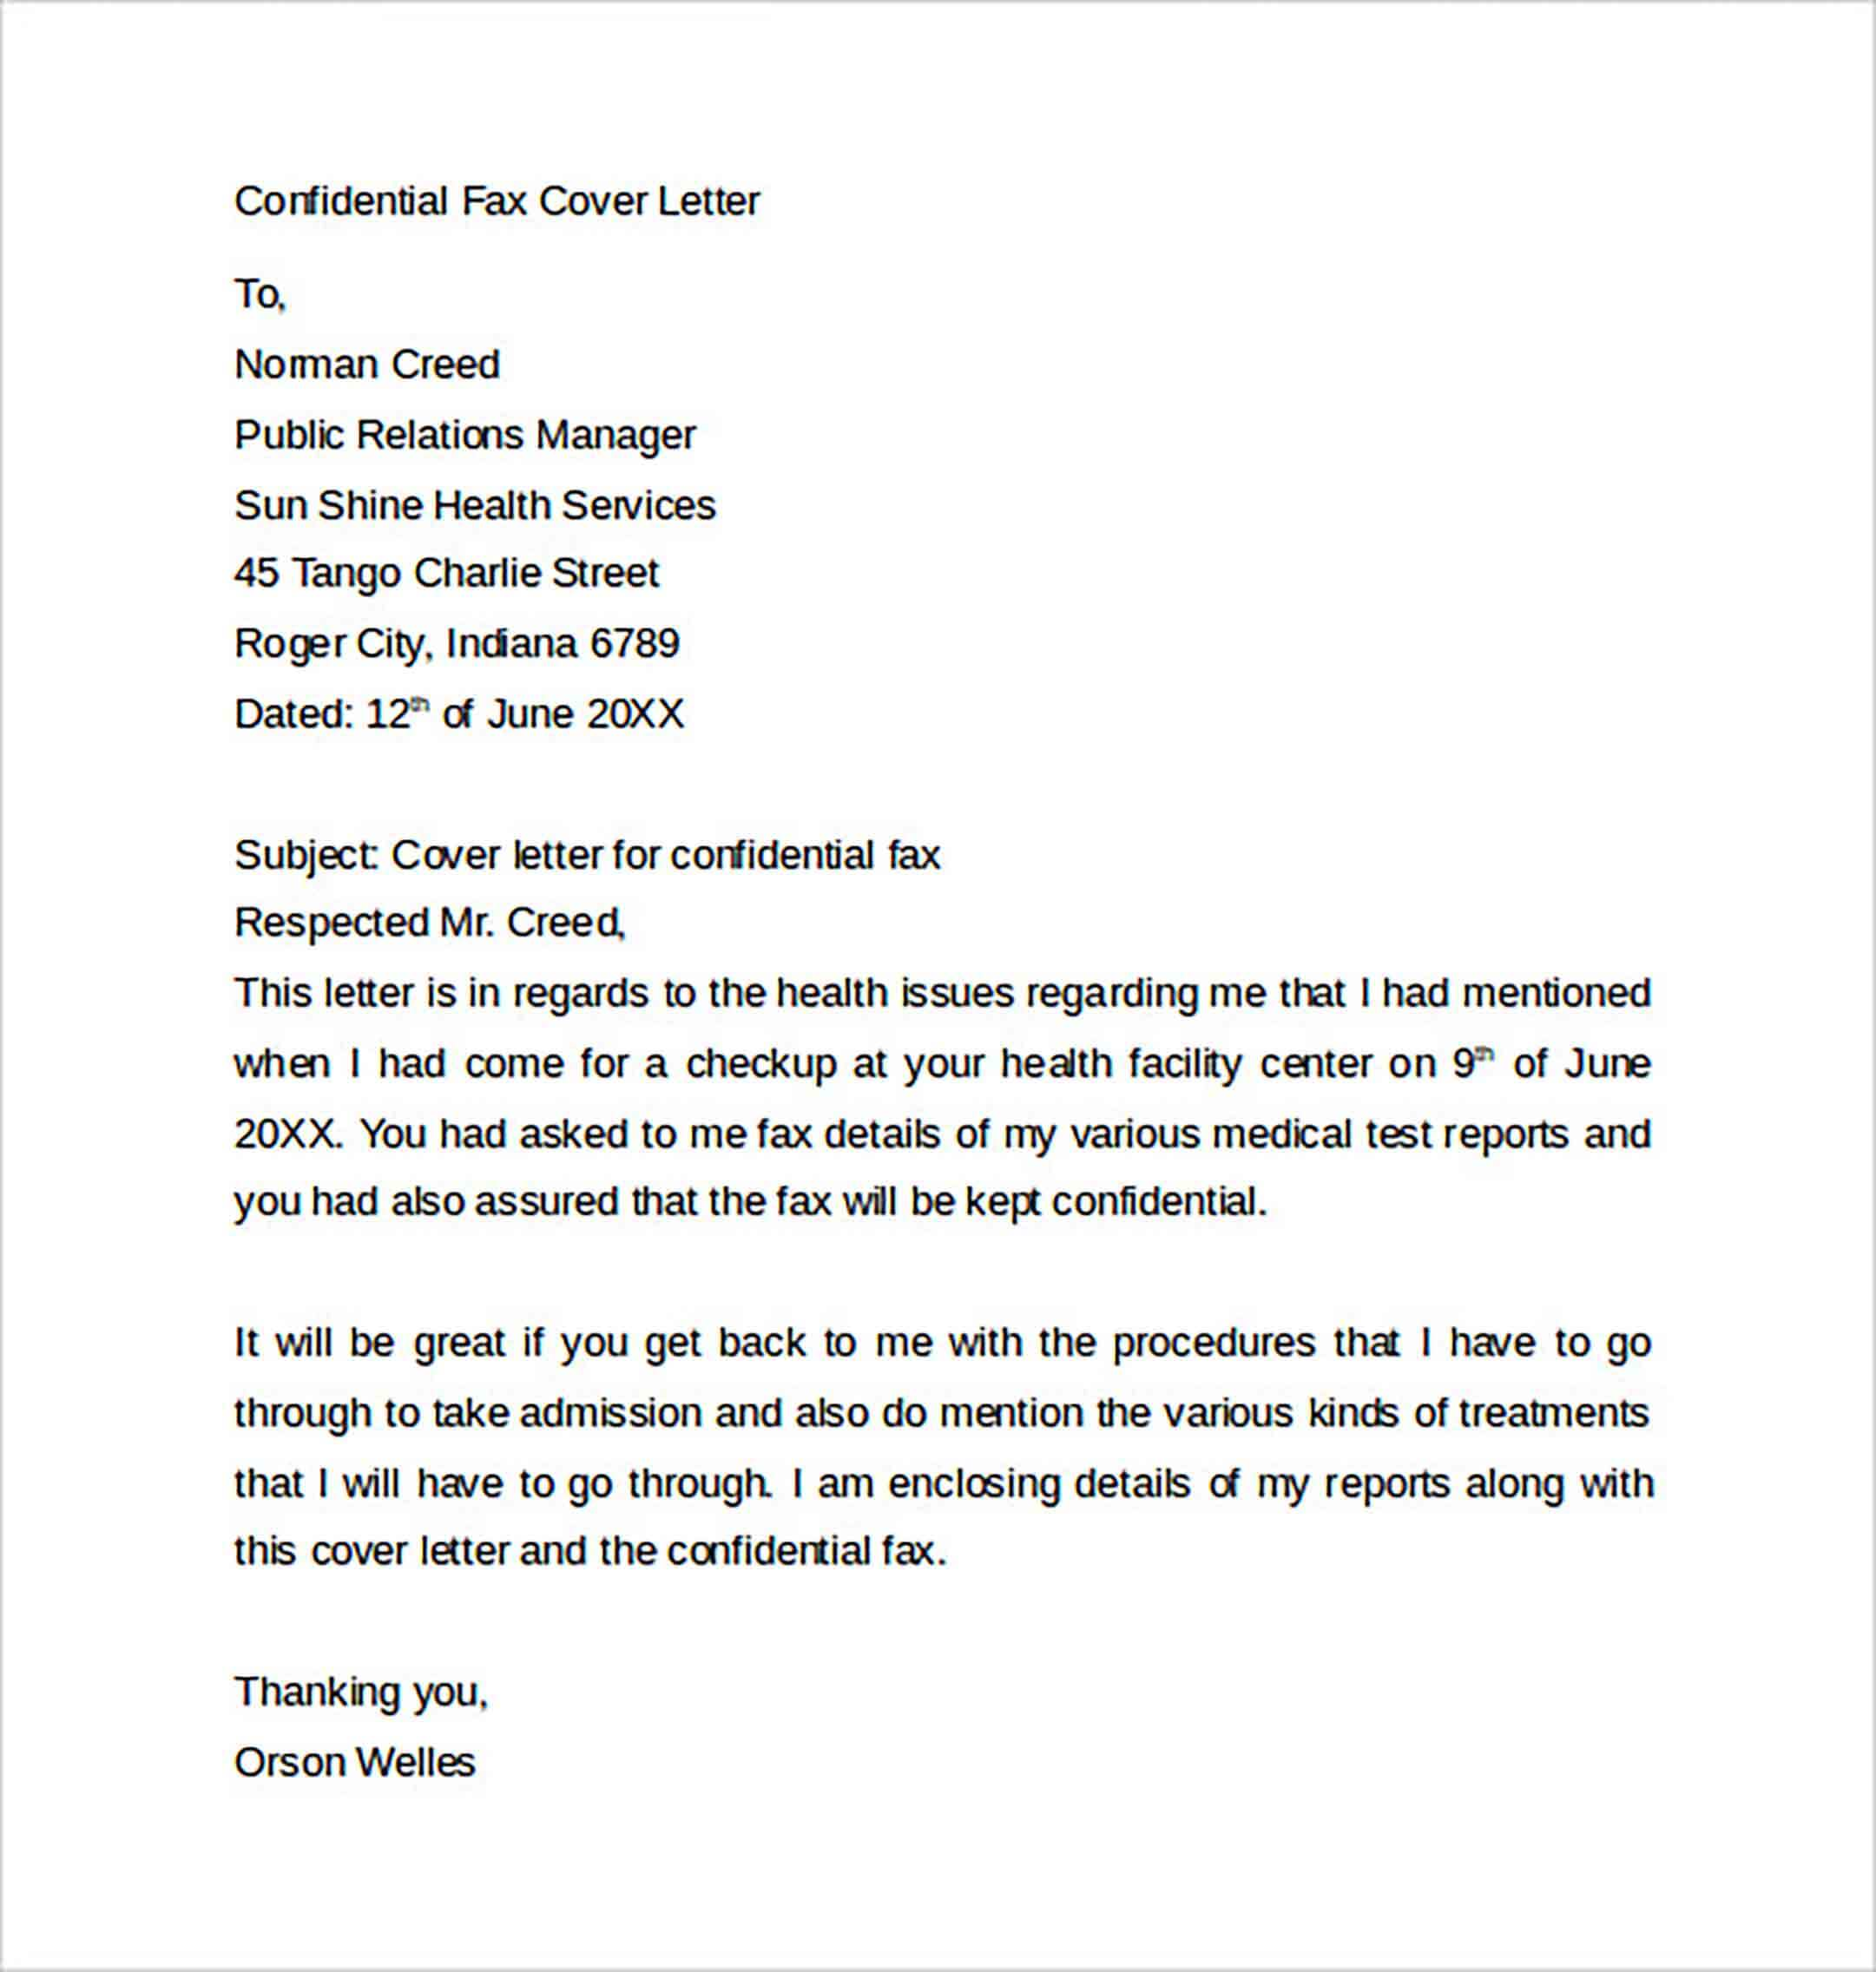 Fax Cover Letter to Print